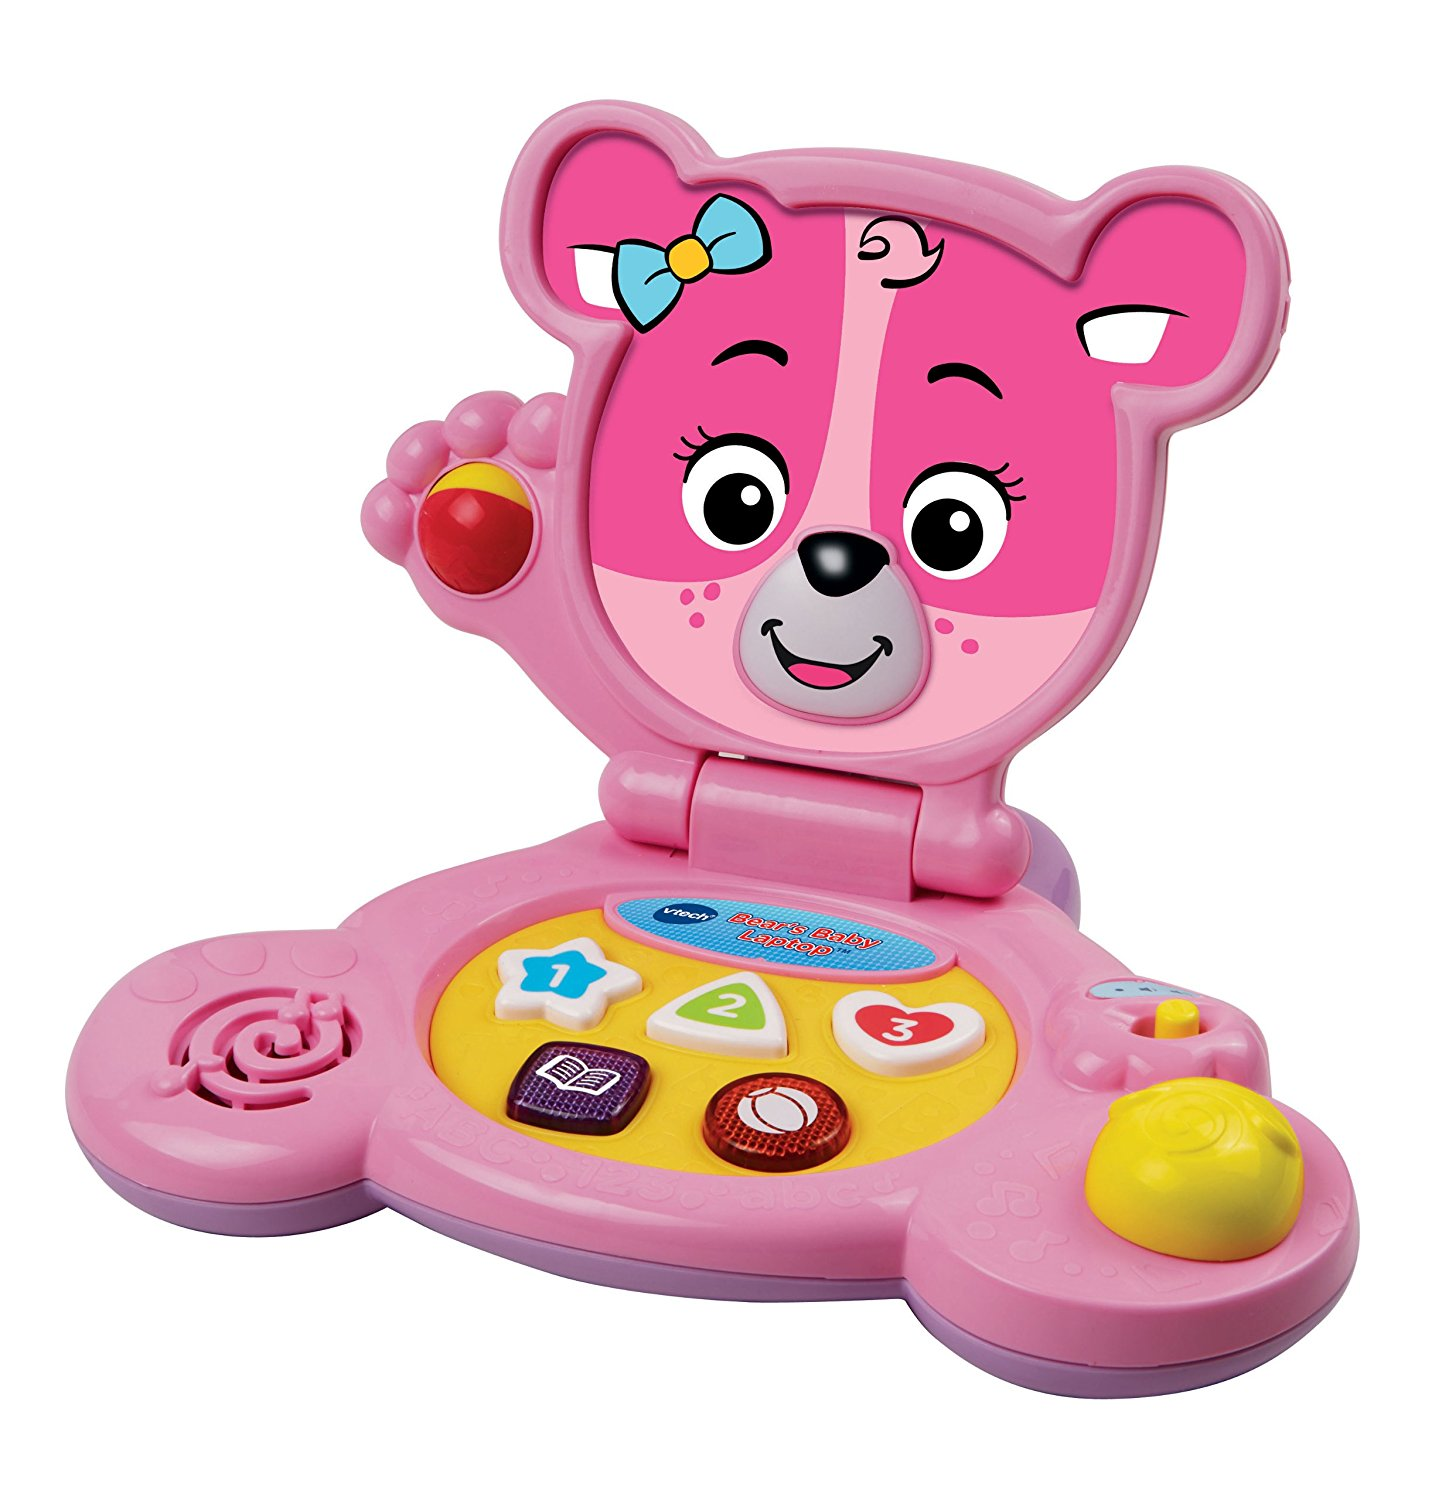 Bear's Baby Laptop, Pink, Projector PeekaBear Exclusive Teddy Soothing SmartPhone inches... by